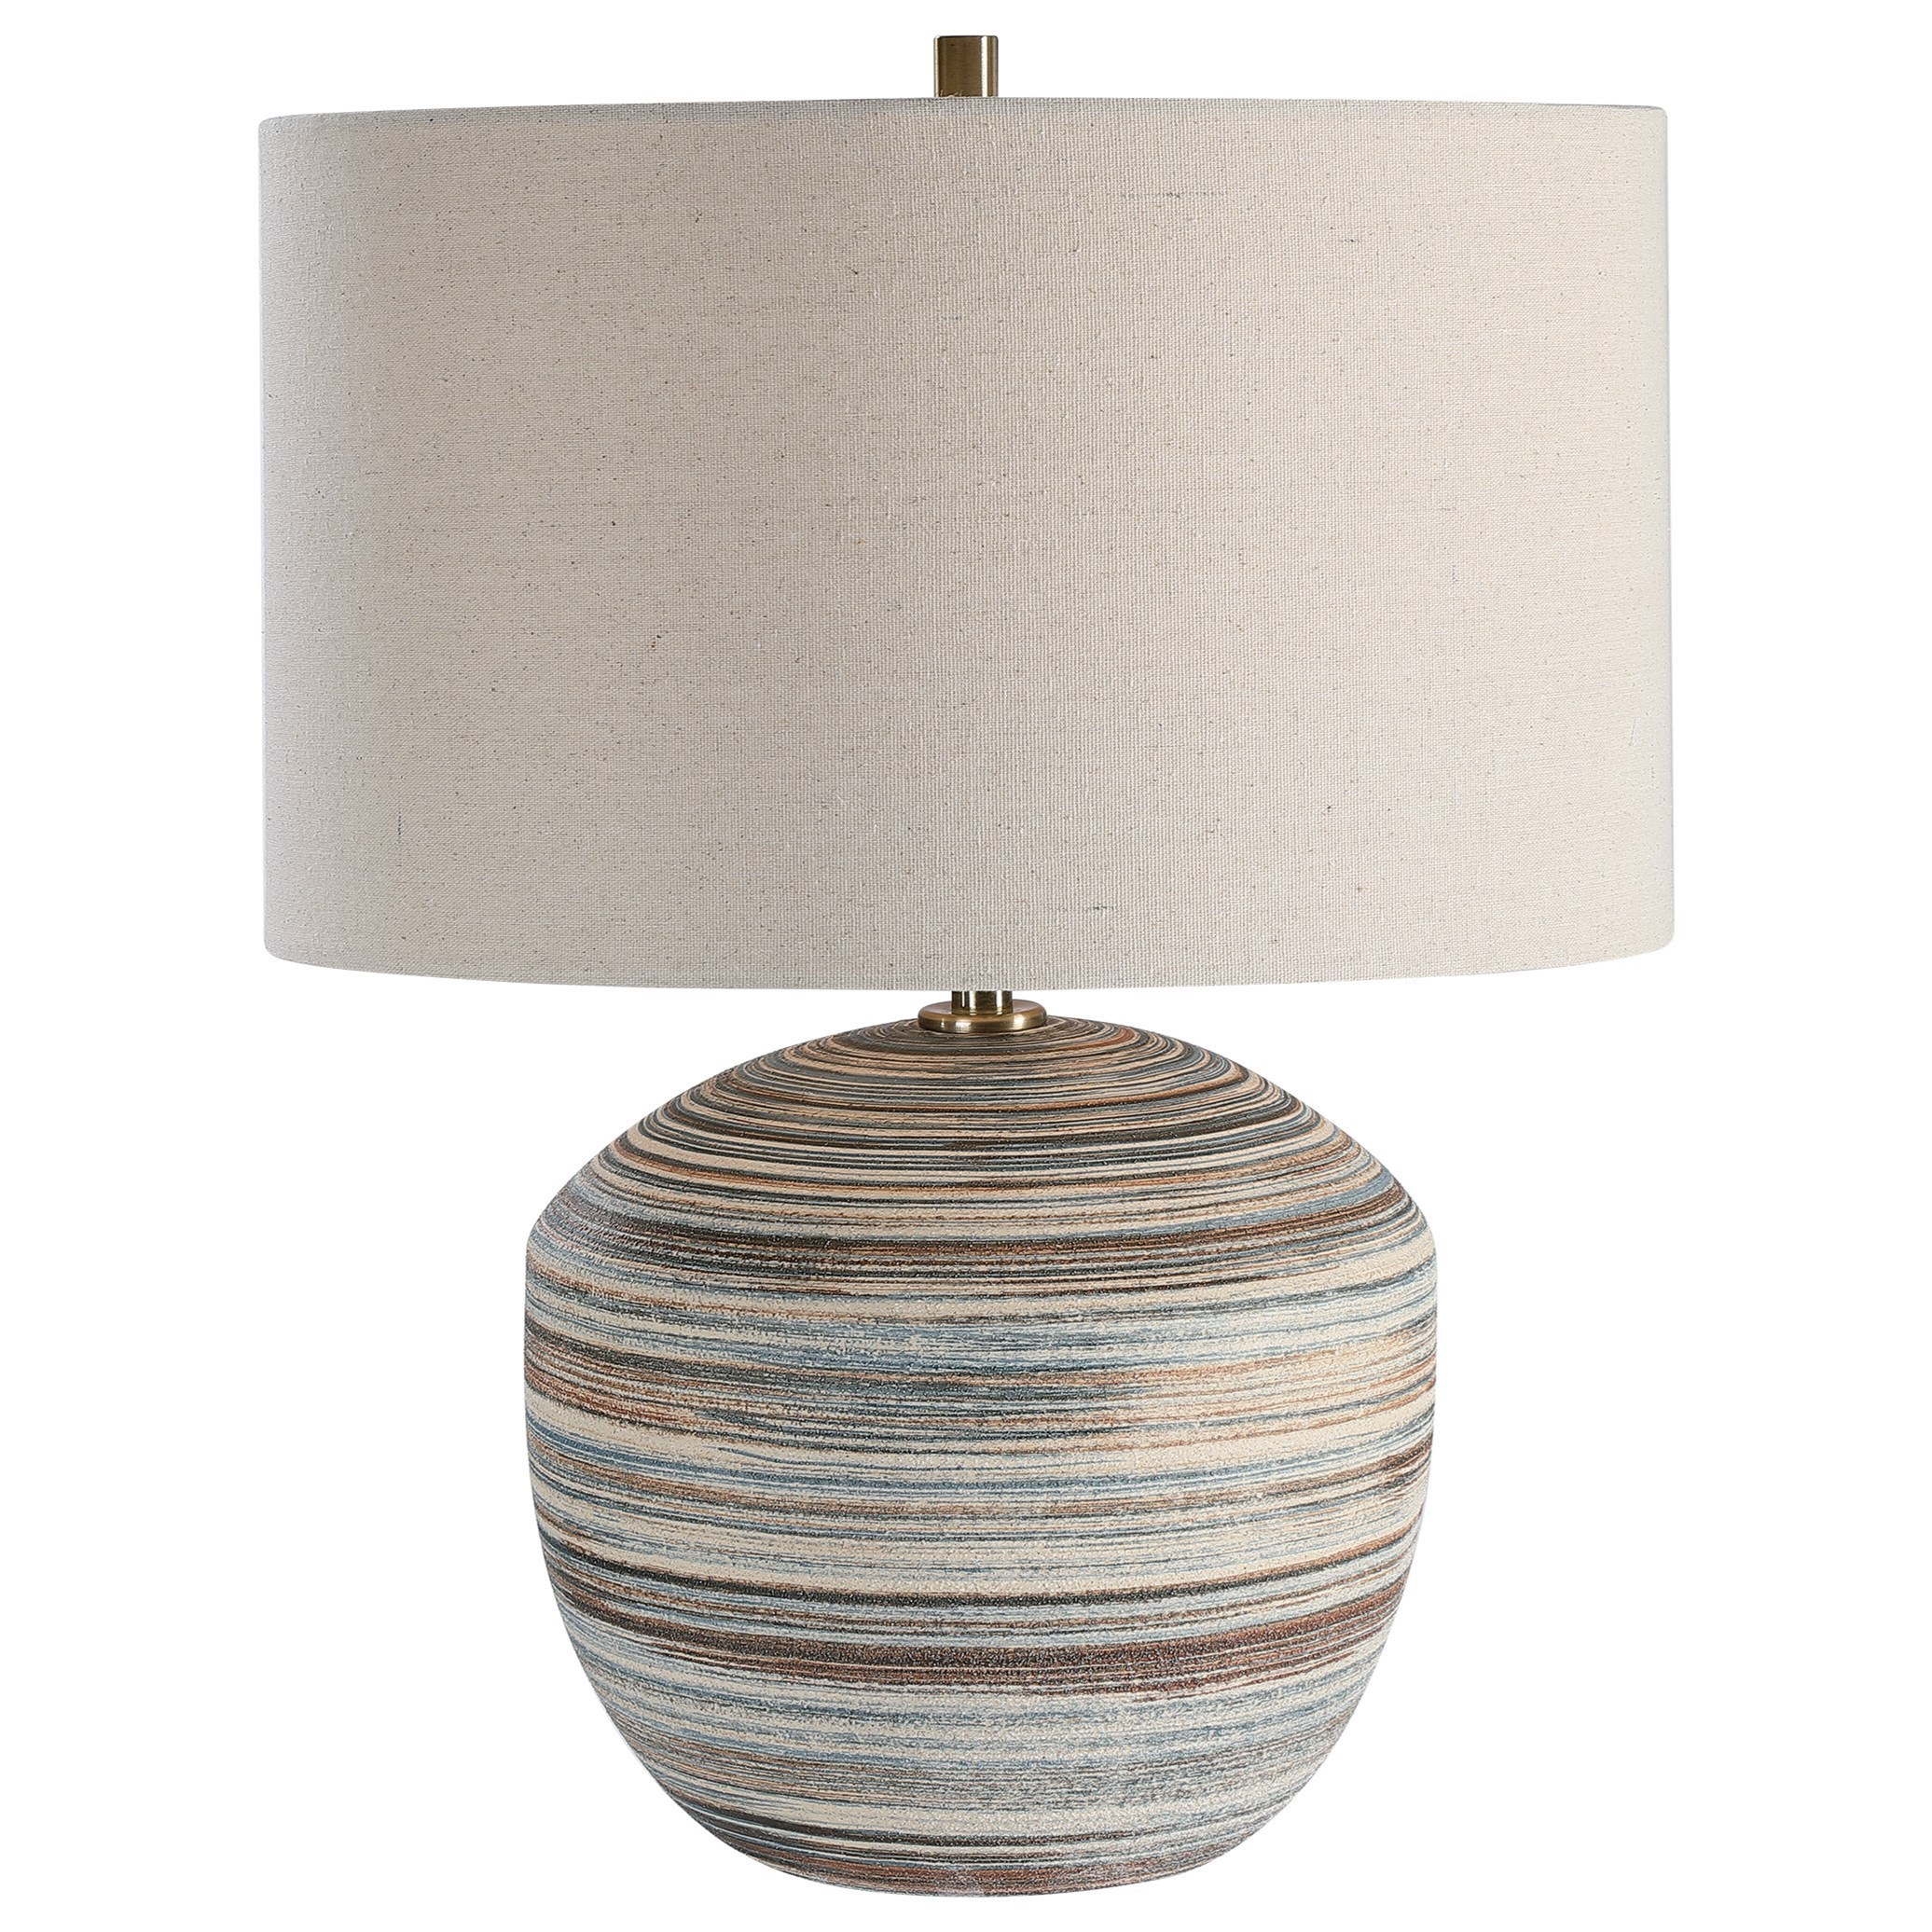 Accent Lamps Prospect Striped Accent Lamp by Uttermost at Del Sol Furniture